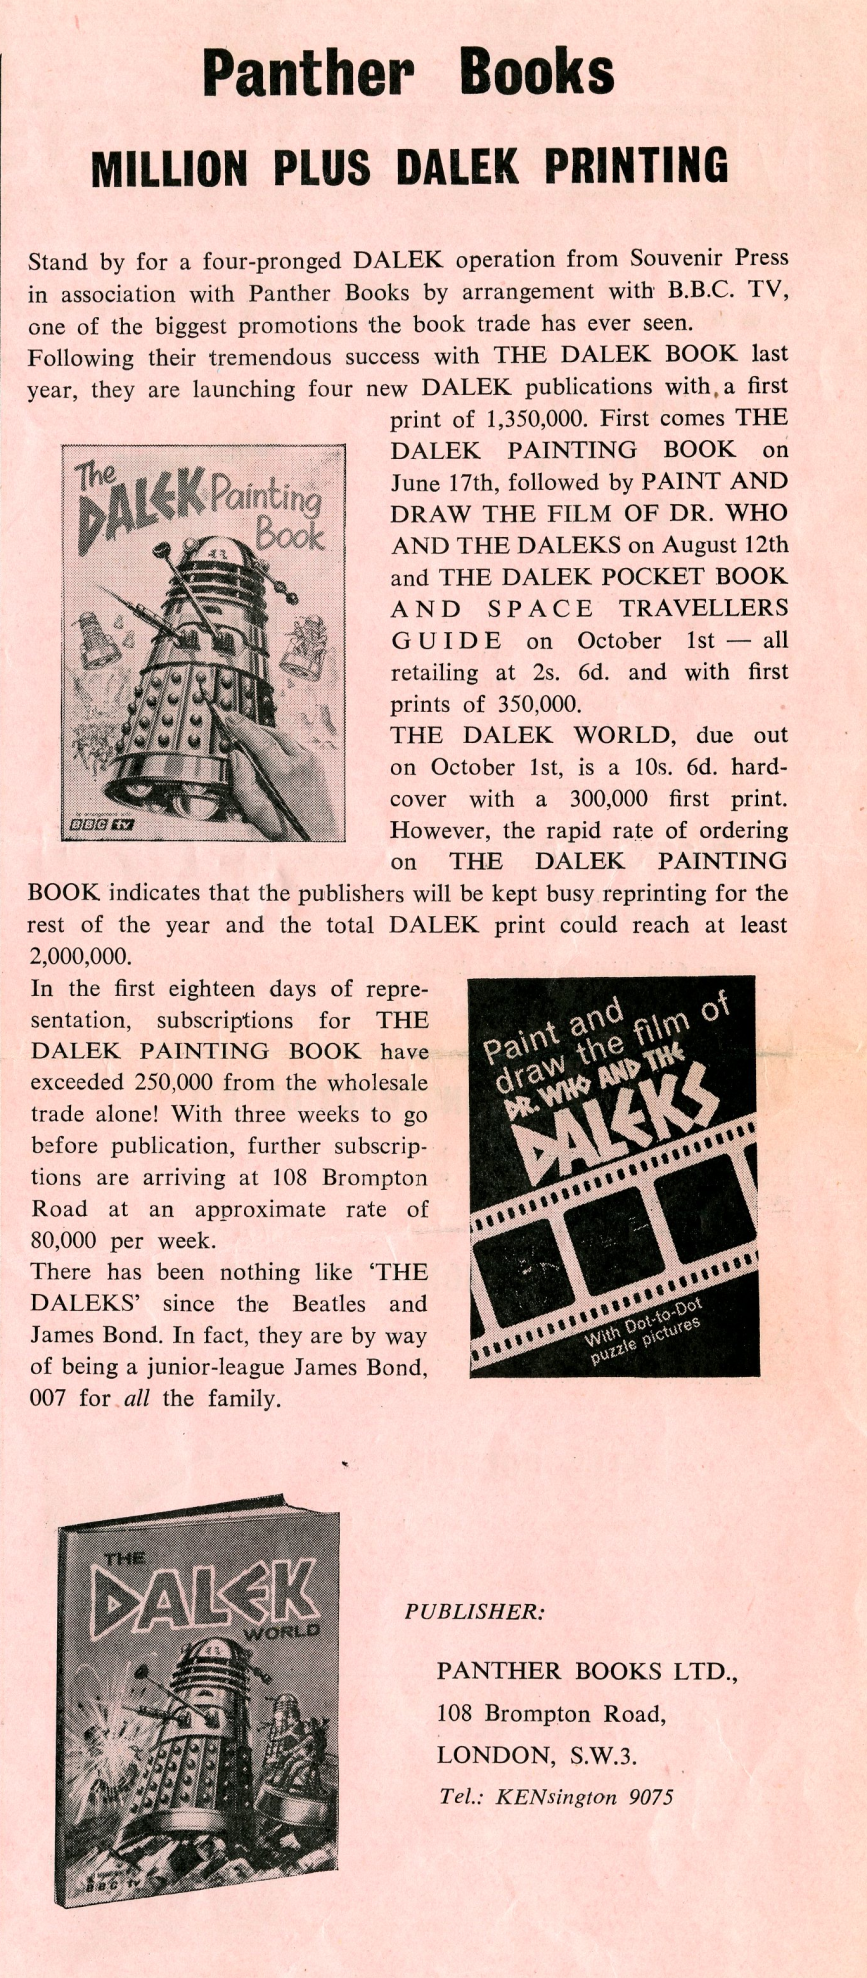 Ad. for the various Dalek publications from Panther Books from the Regal Films, Dr. Who and the Daleks Campaign Book Merchandise Supplement